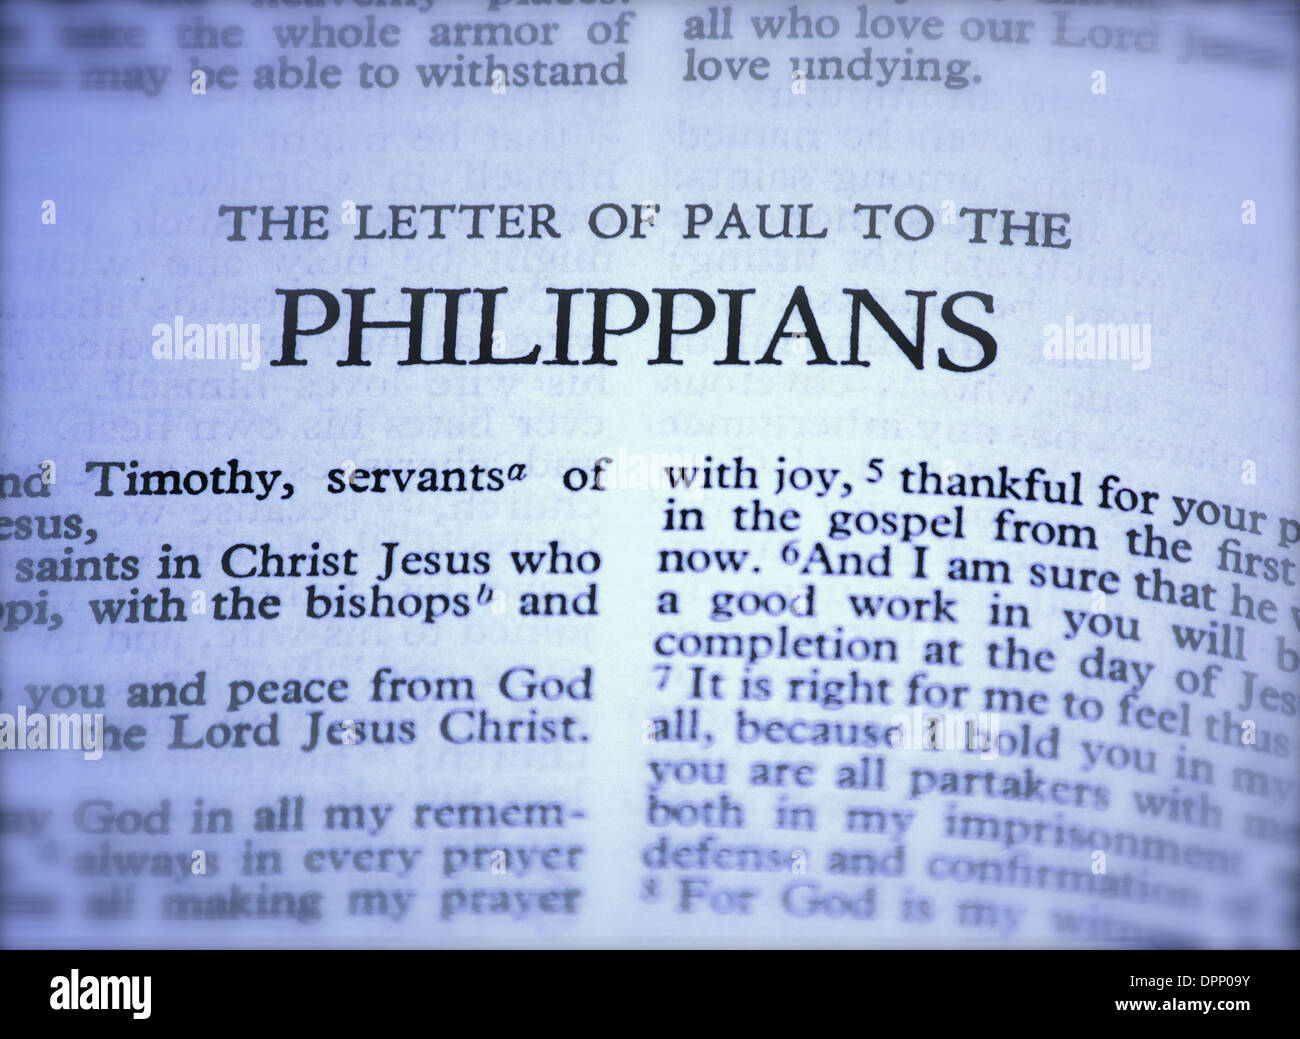 pauls letter to the philippians bible letter of paul to the philippians stock photo 31105